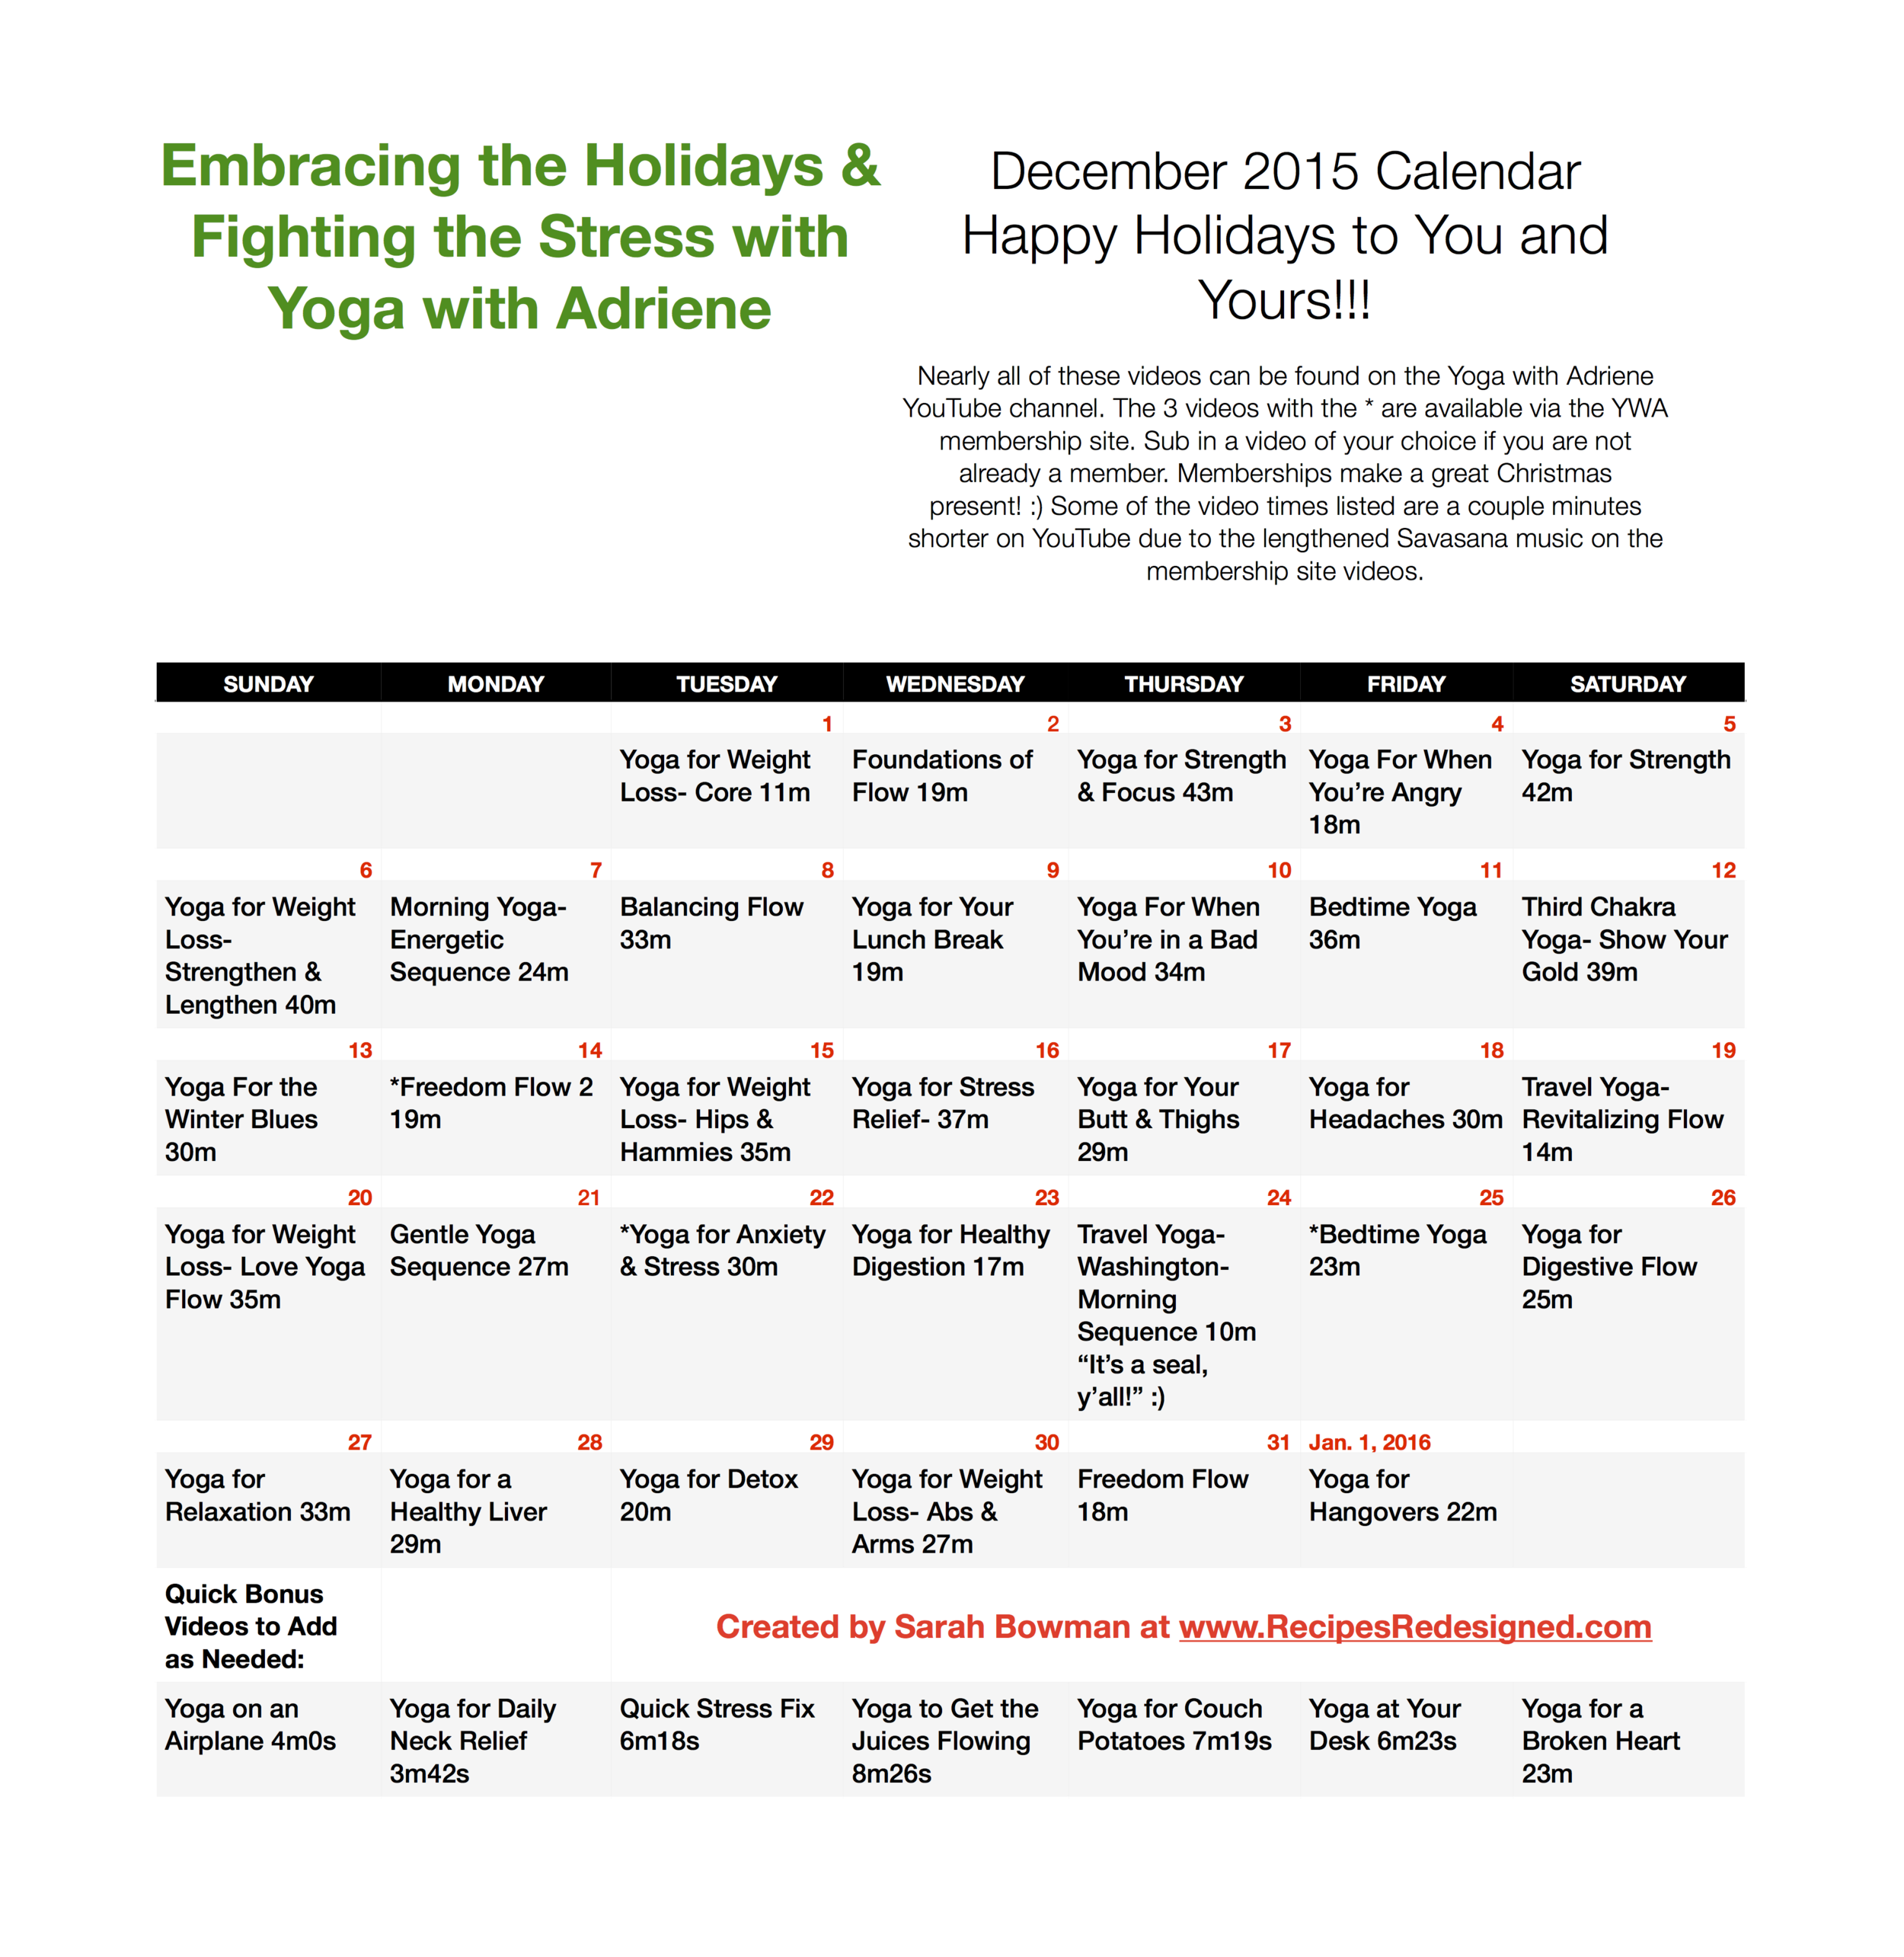 Embracing the Holidays & Fighting the Stress with Yoga with Adriene December calendar by Recipes Redesigned